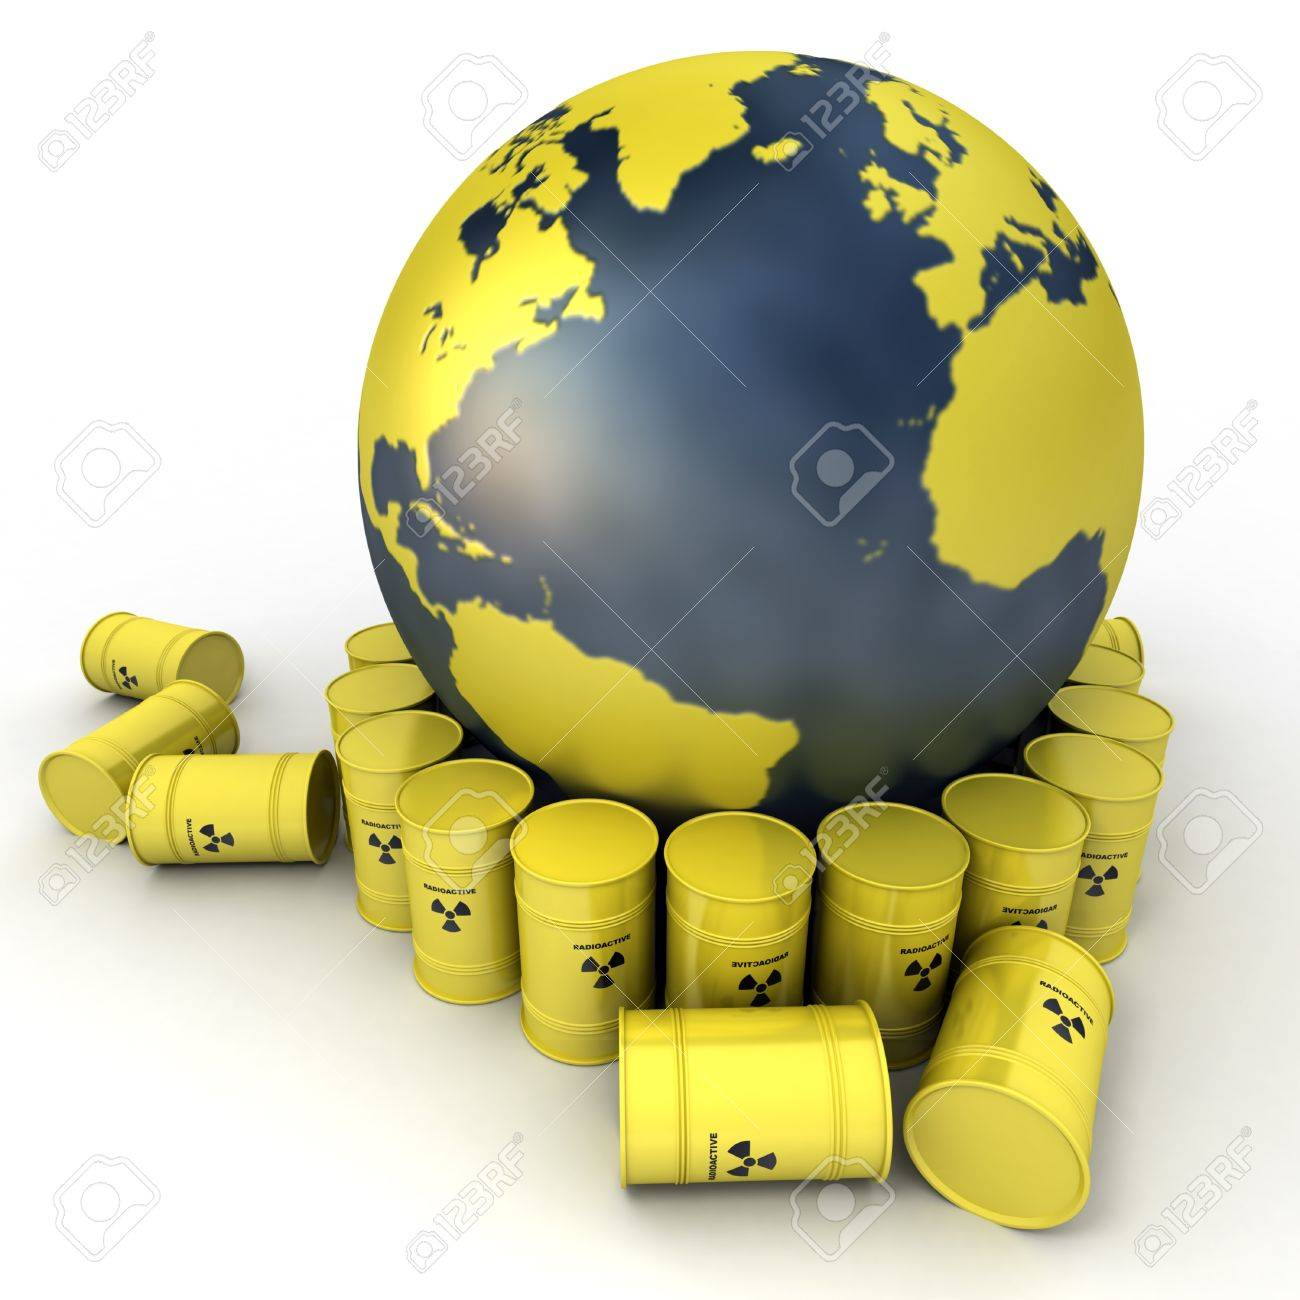 The Earth, oriented to the Atlantic surrounded by barrels of nuclear waste Stock Photo - 12203000